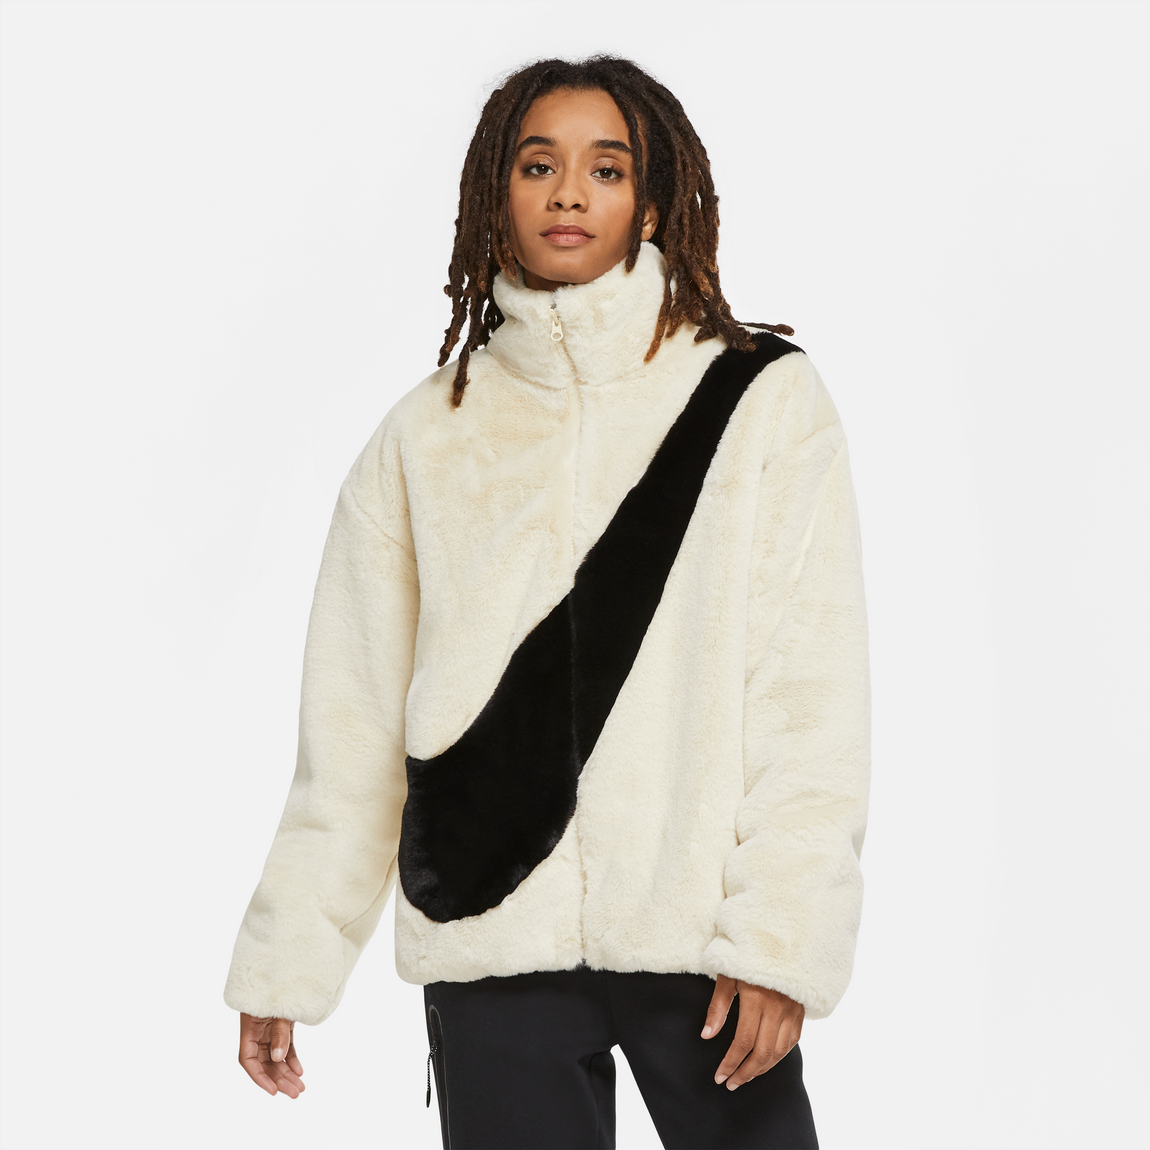 Nike Sportswear Women's Faux Fur Jacket (Fossil/Black) - Nike Sportswear Women's Faux Fur Jacket (Fossil/Black) -